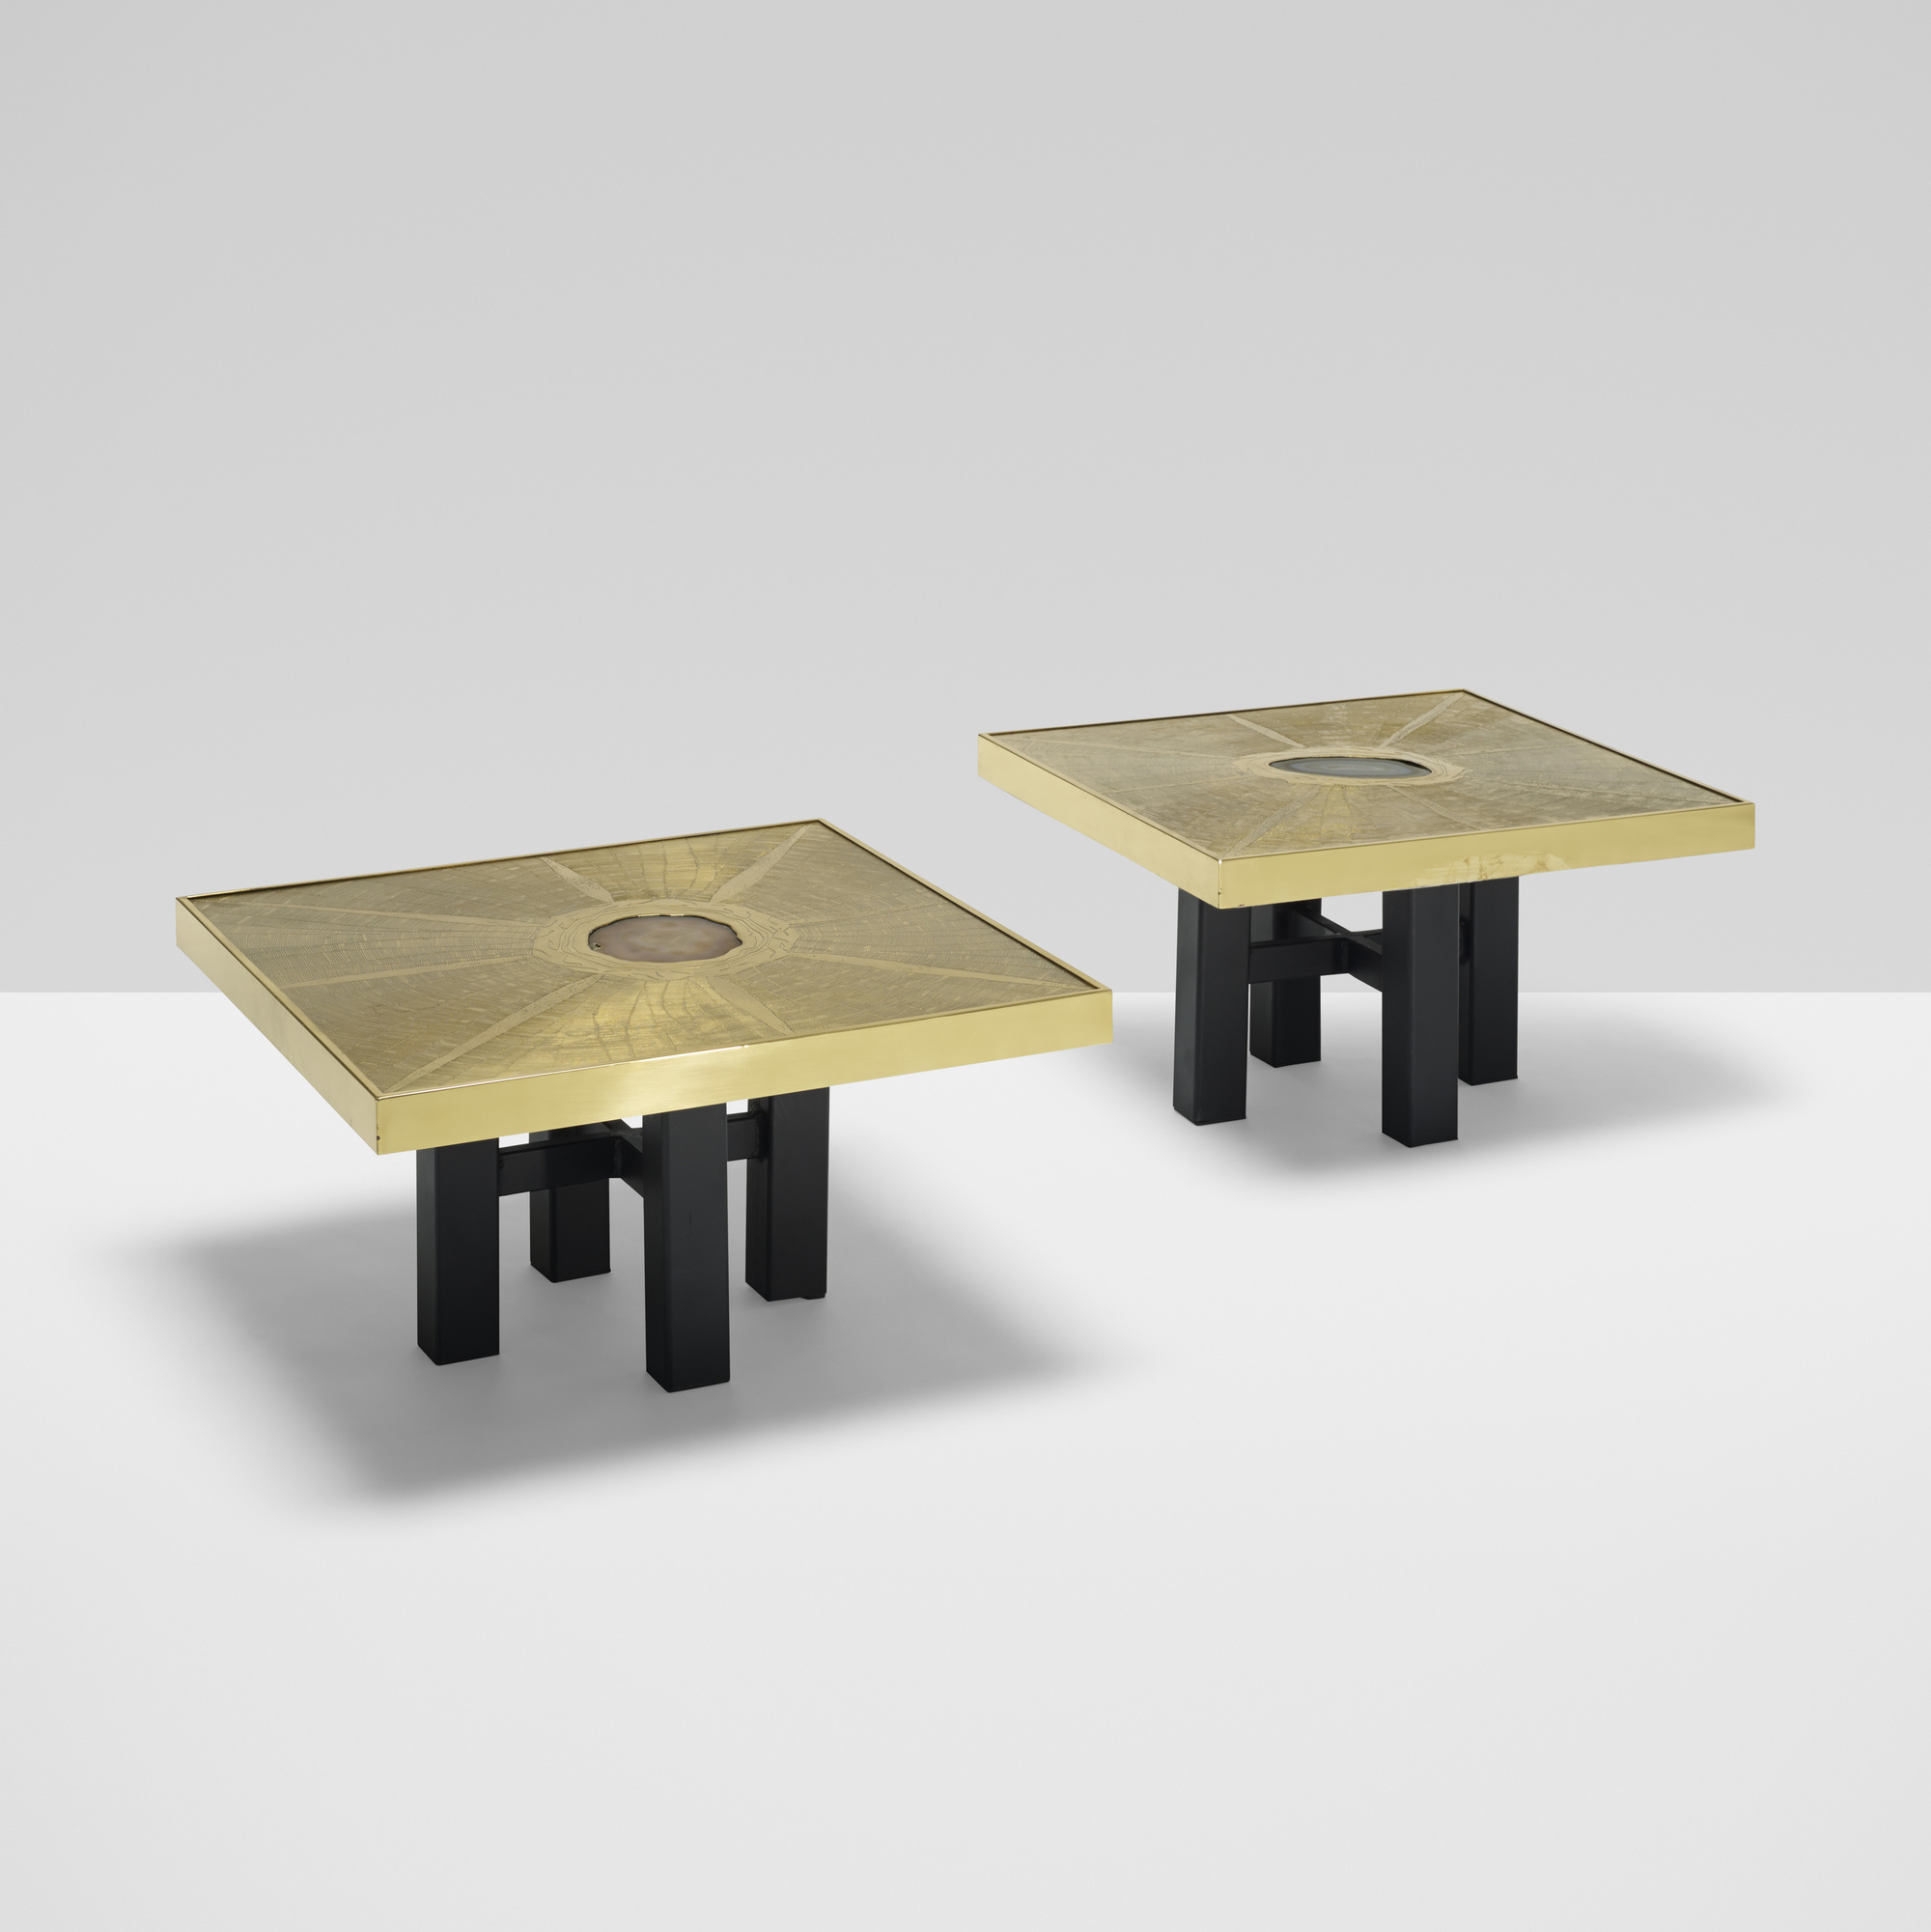 403: Paco Rabanne / coffee tables, pair (1 of 3)